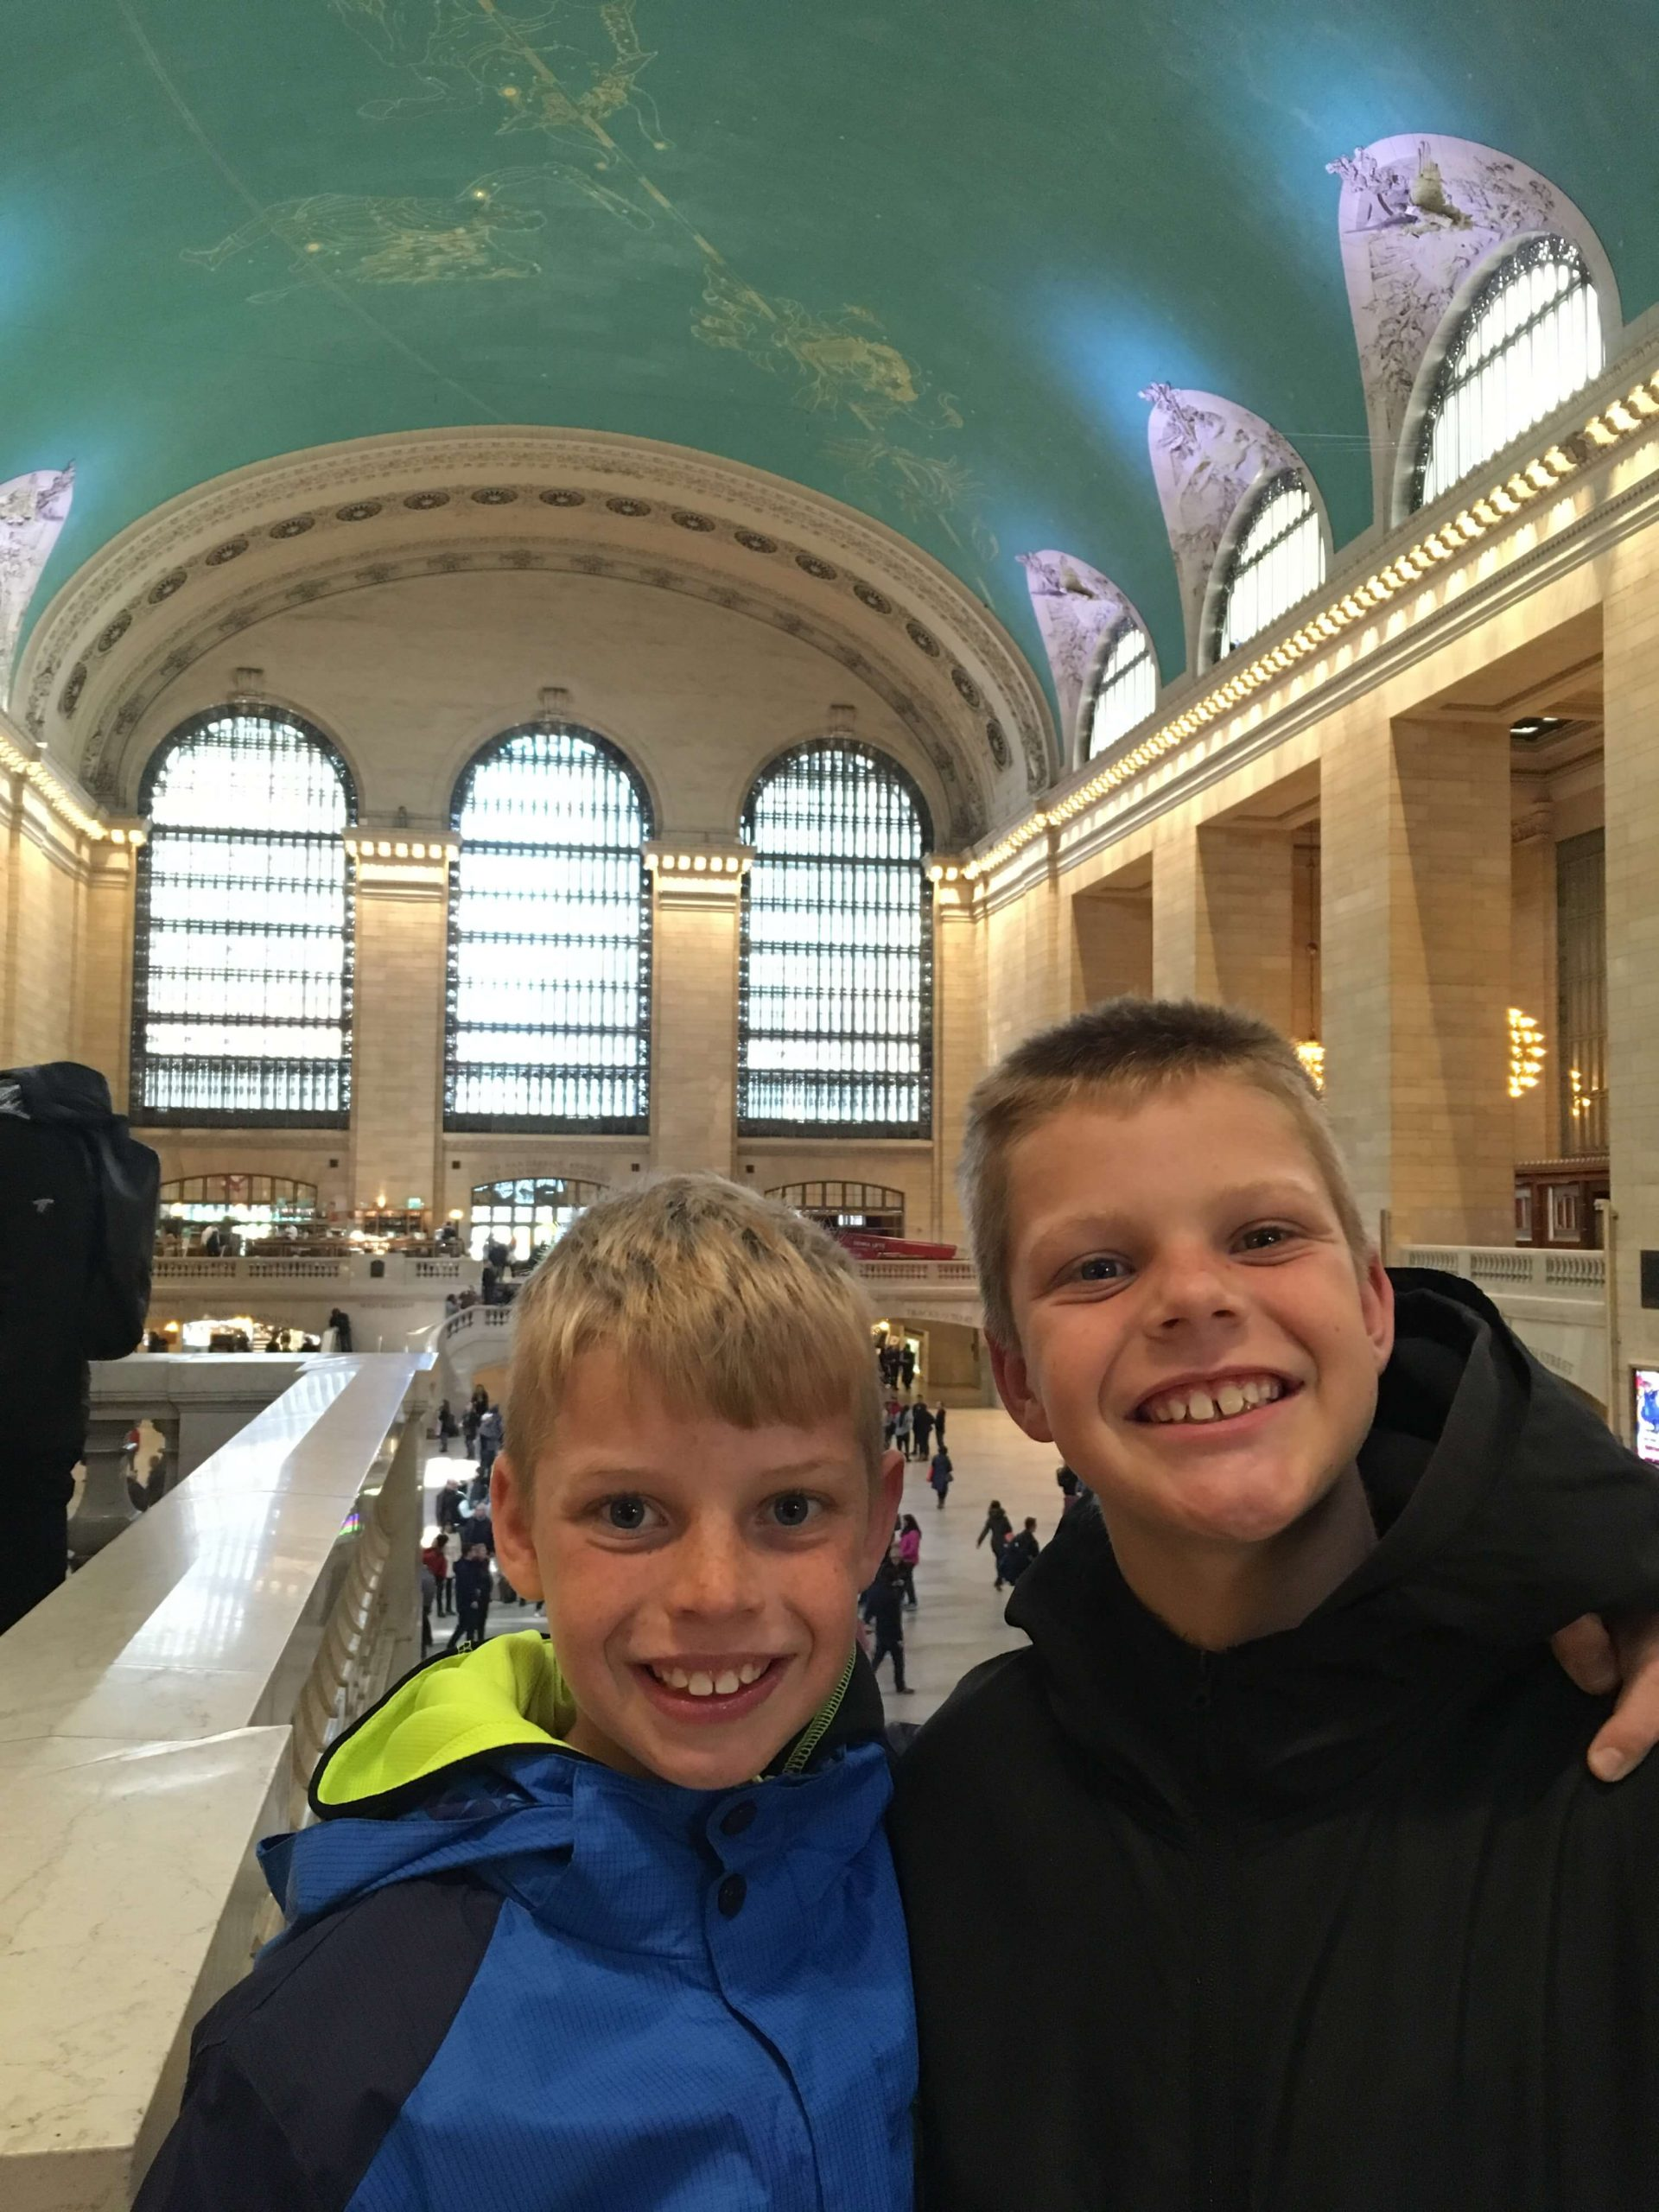 Boys in Grand Central Terminal NYC